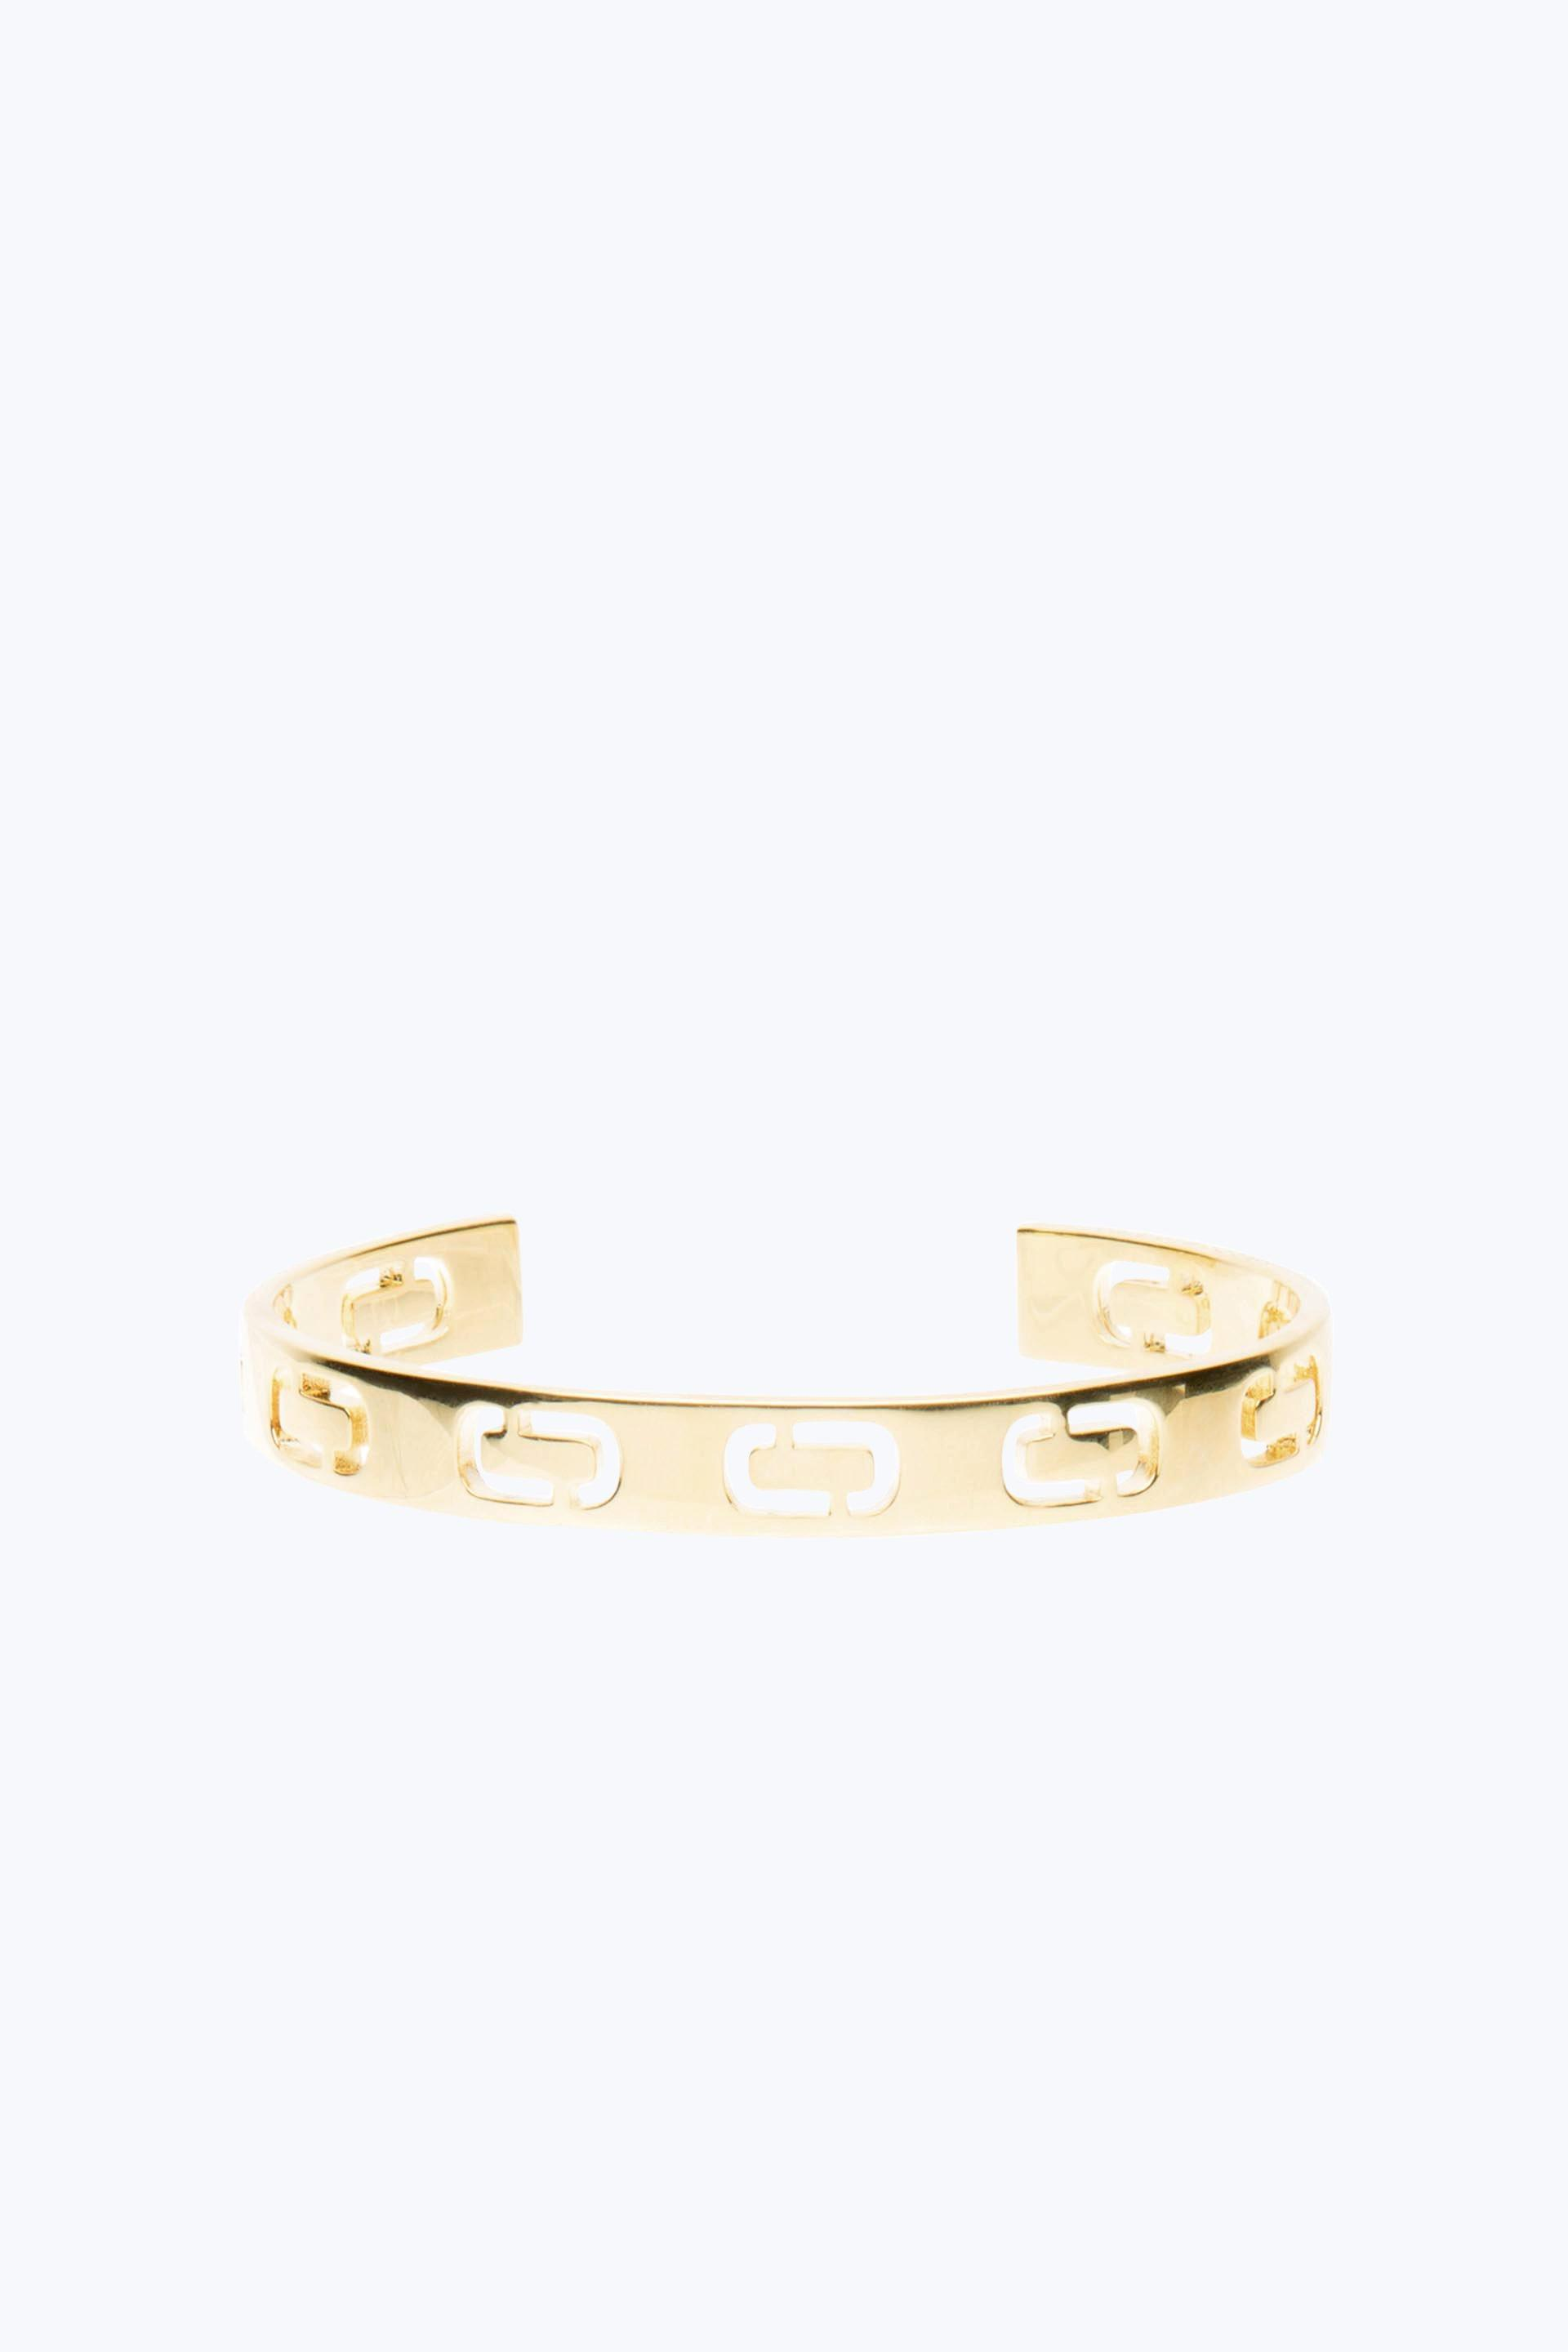 Marc Jacobs Icon Cuff in Metallic Gold qBaKpQN